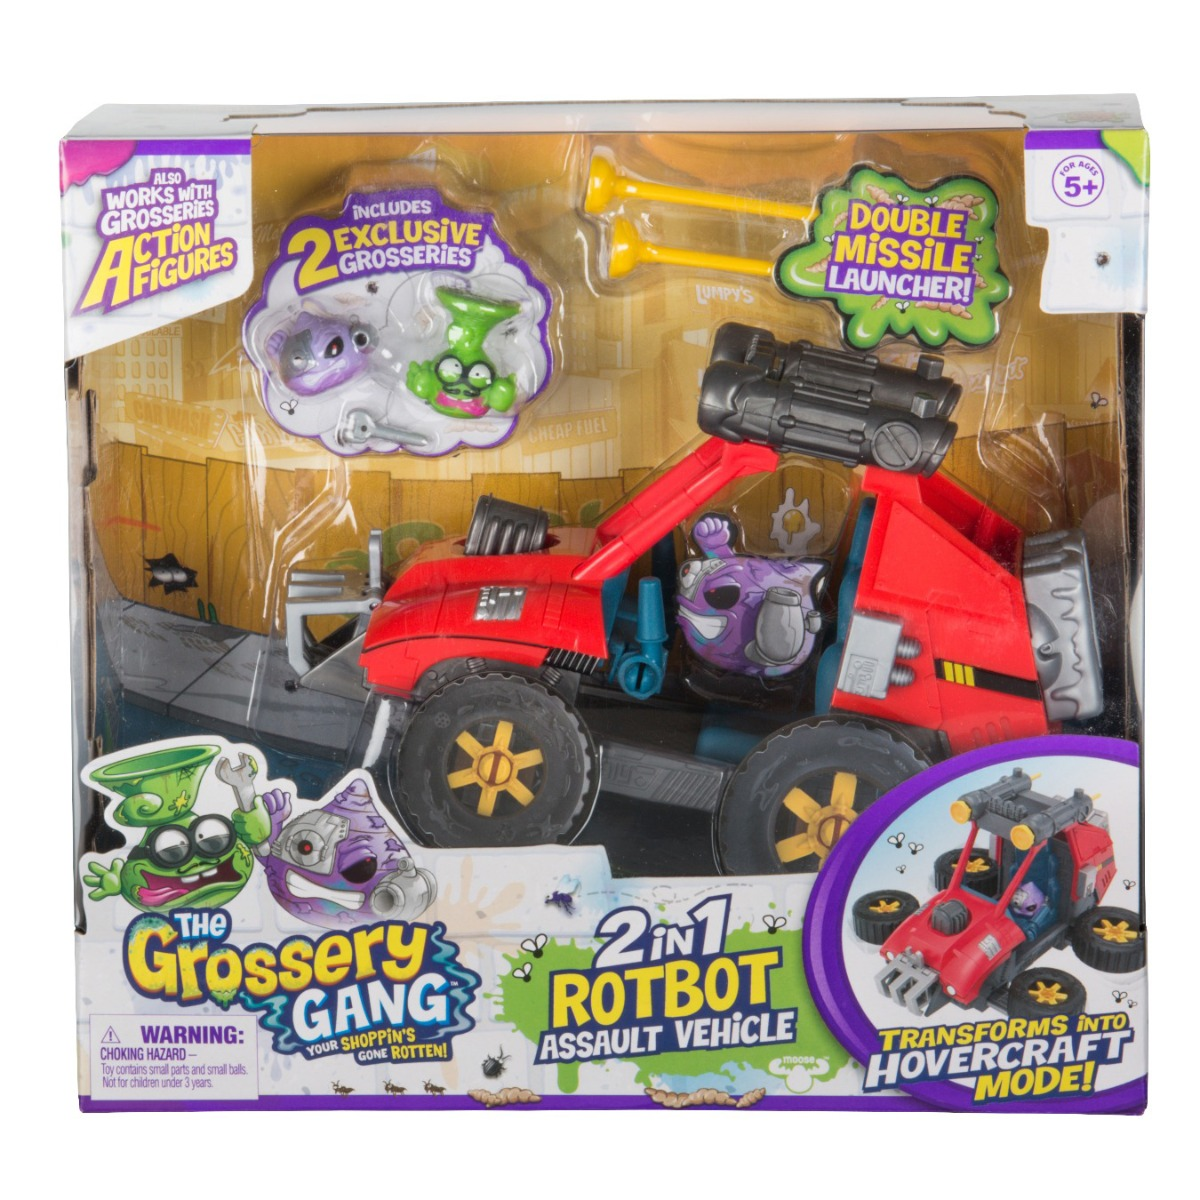 Set de joaca vehicul de asalt 2 in 1 Rotbot ATV Grossery Gang, S5